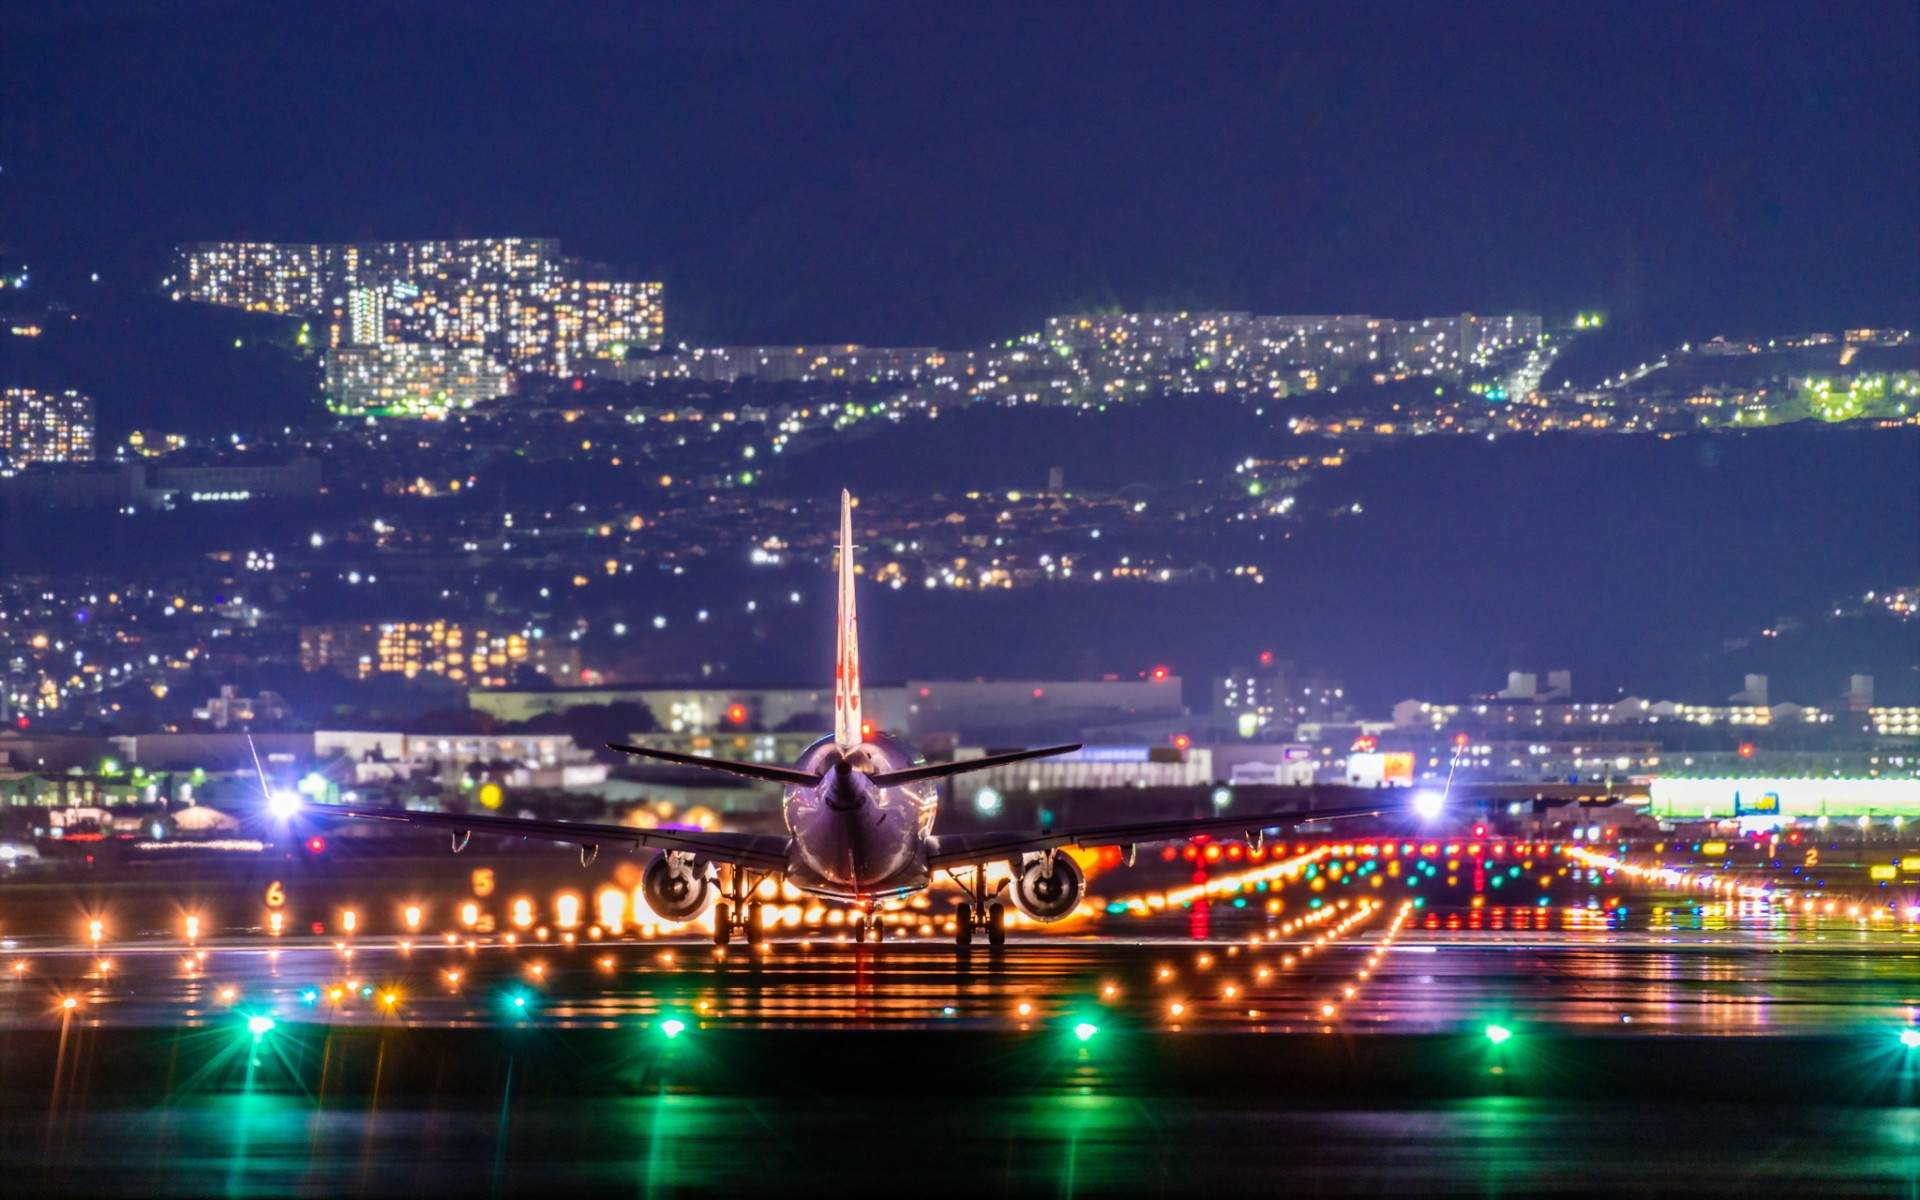 Great Wallpaper Night Airplane - cool_airplane_landing_at_itami_airport_at_night_by_rogue_rattlesnake-dbwp0on  Collection.jpg